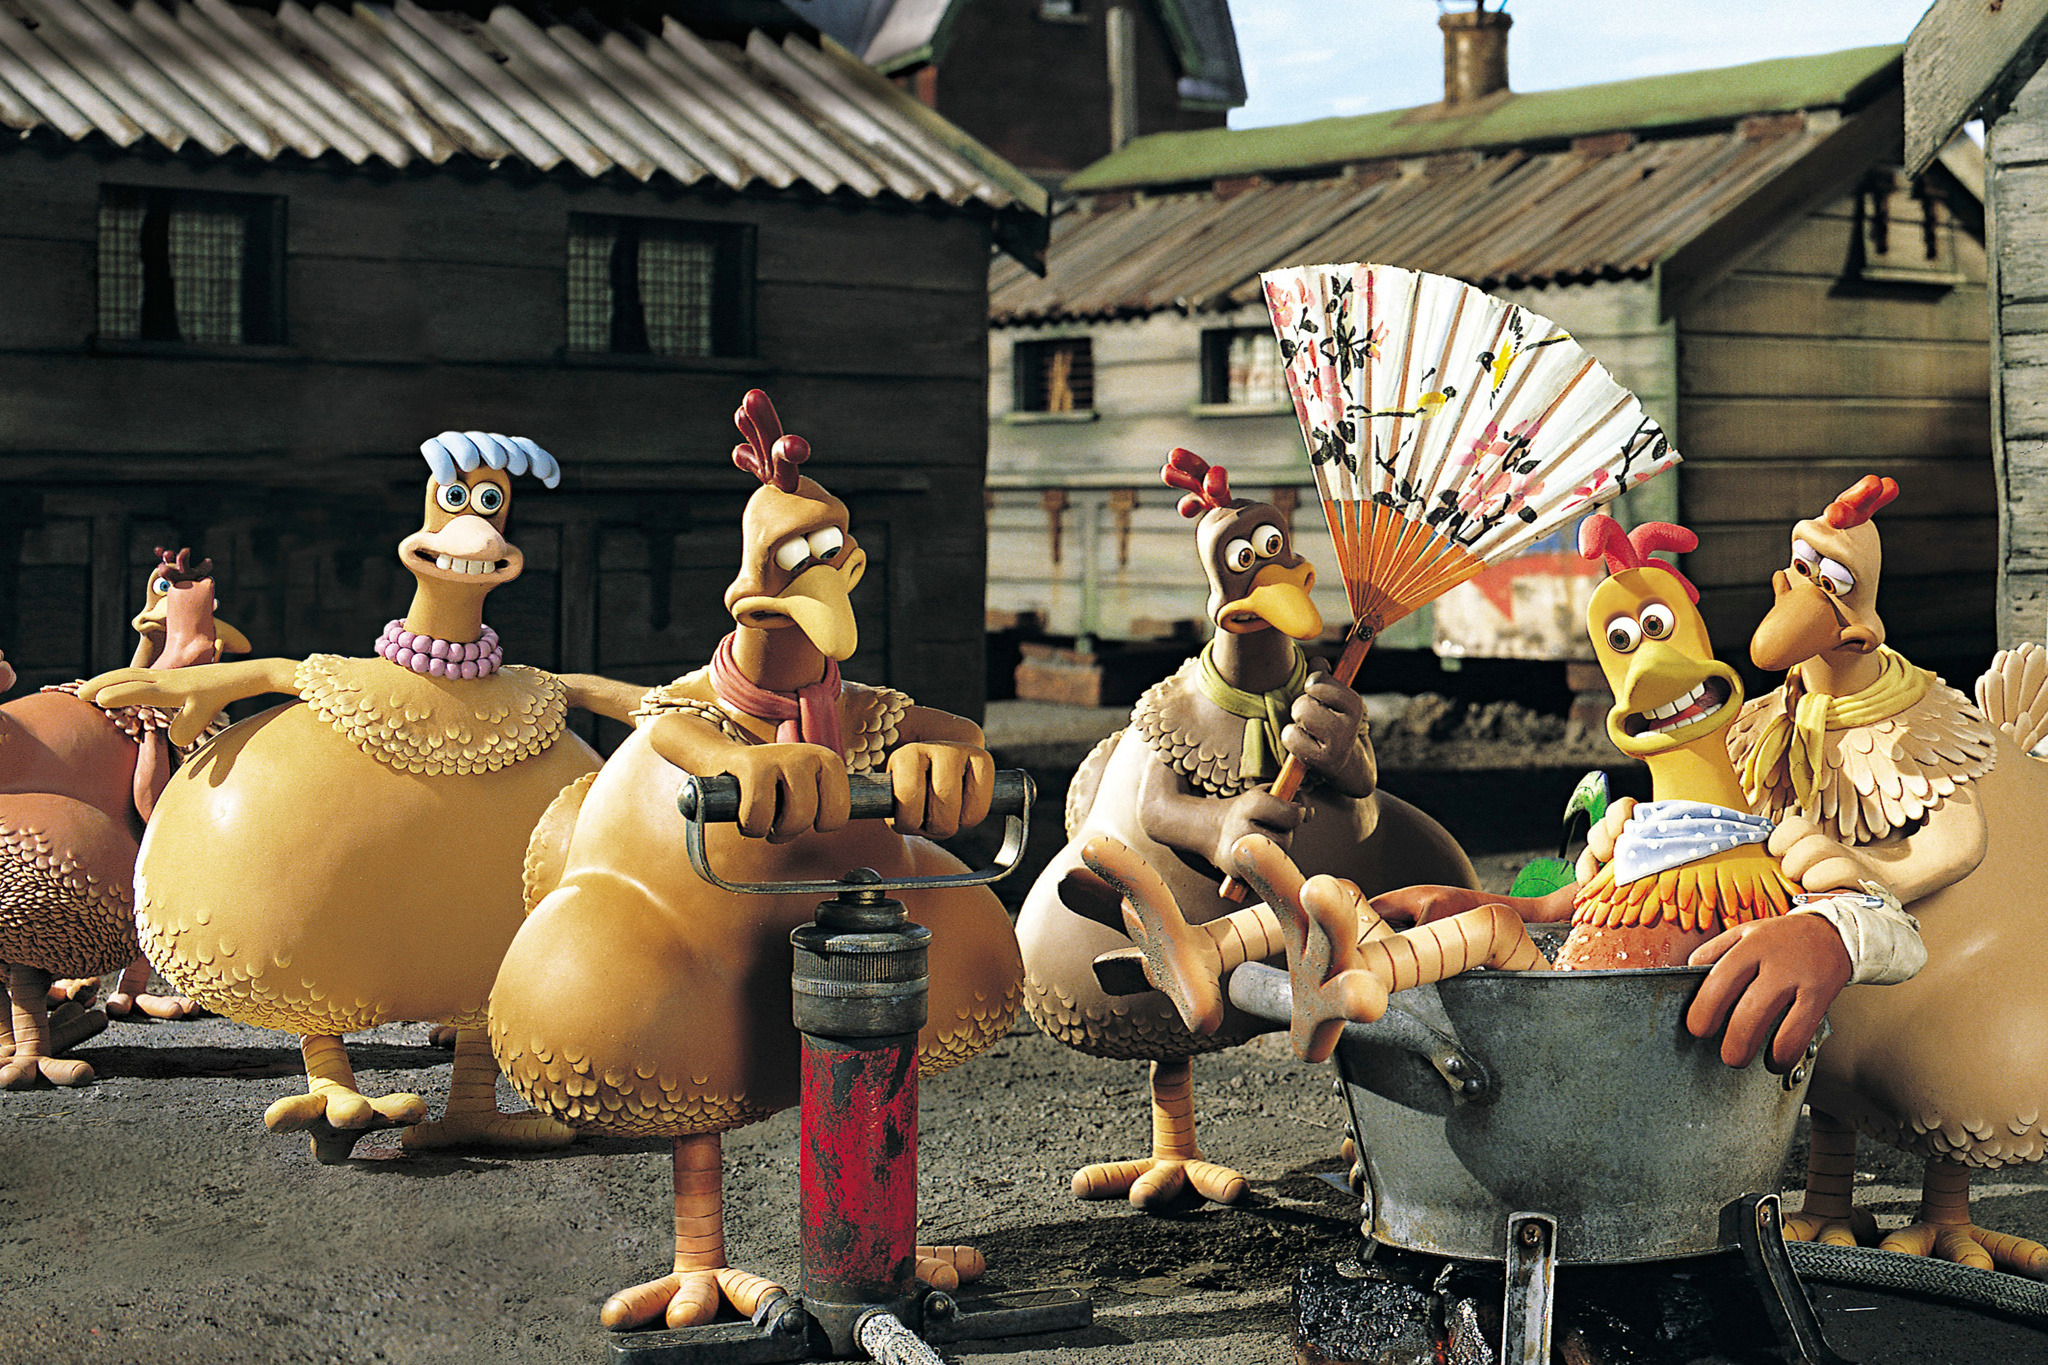 Best animation movies: Chicken Run